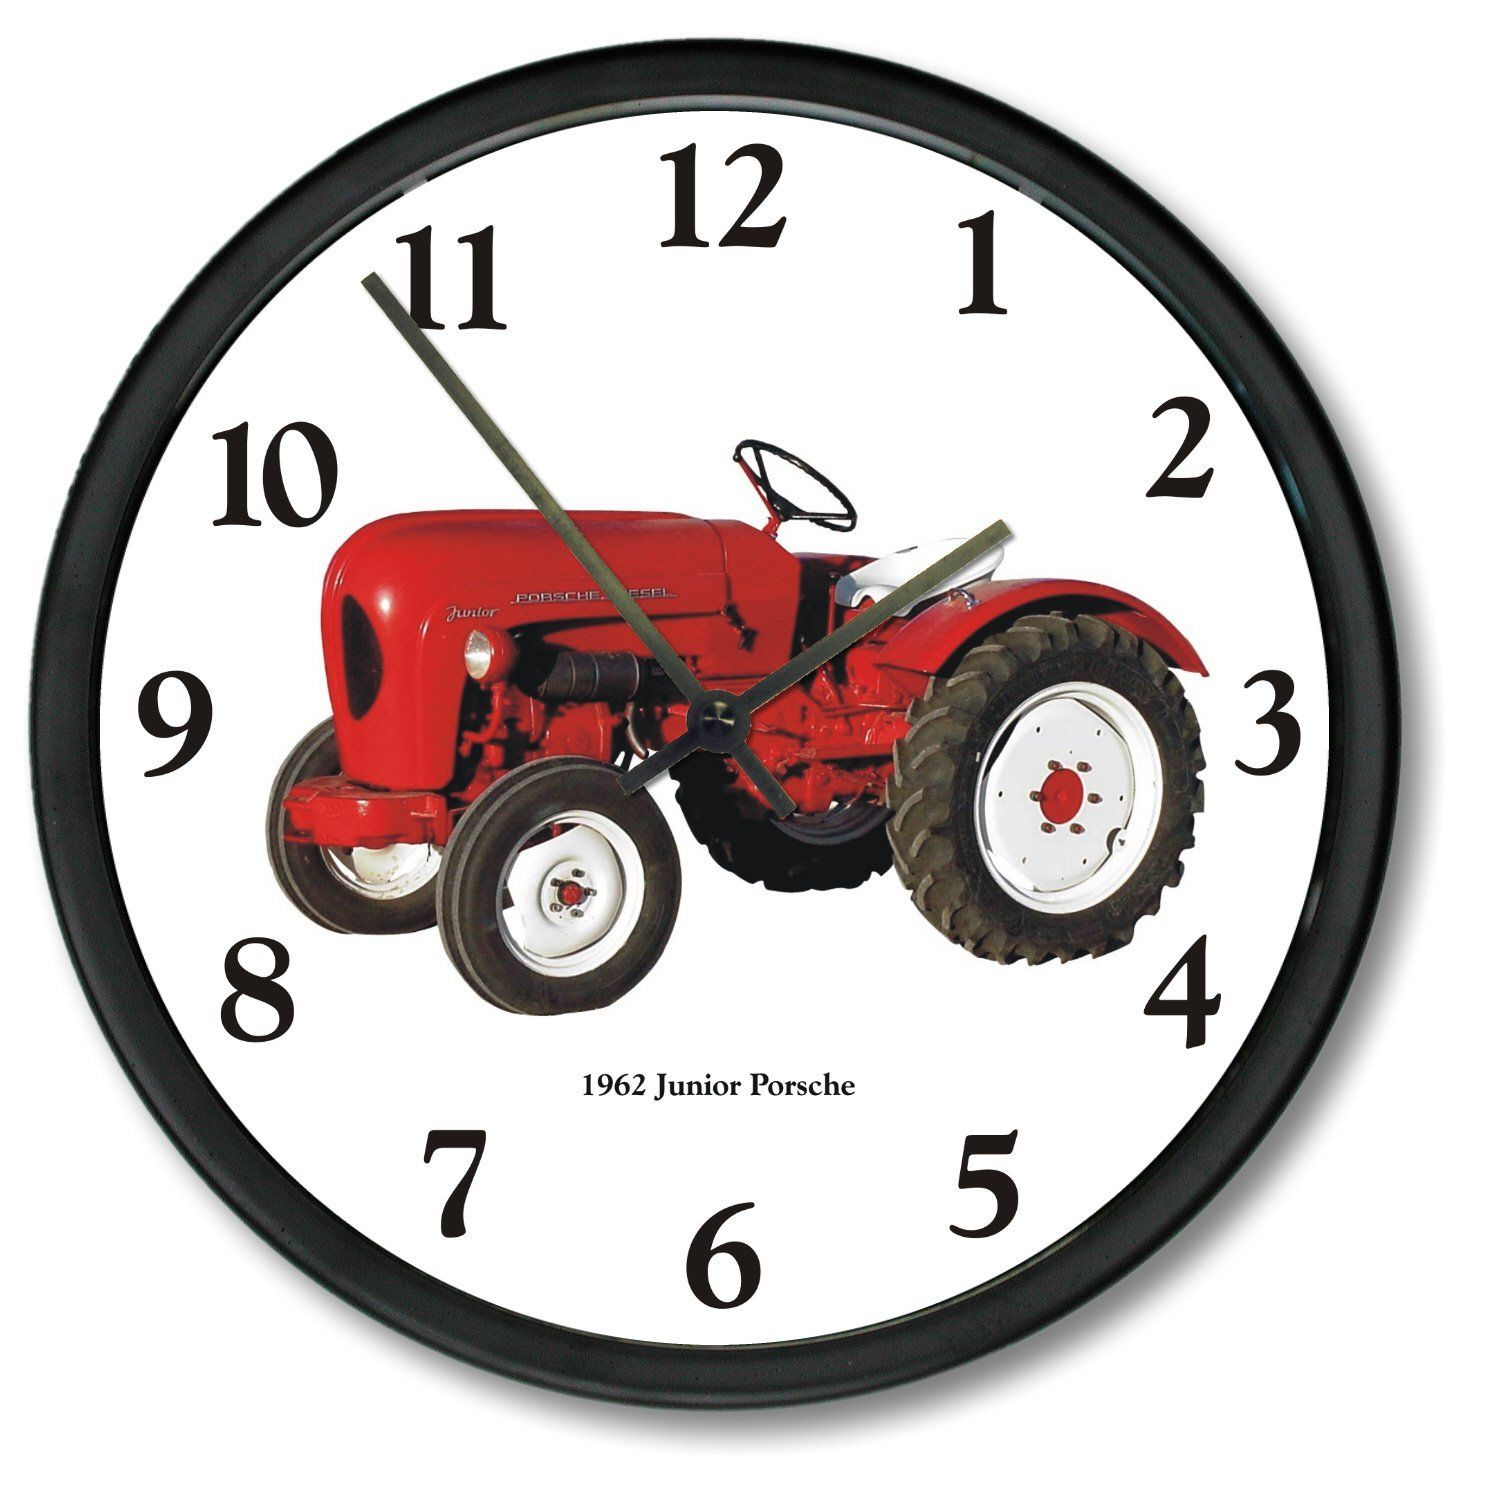 New Vintage 1962 Junior Porsche Tractor Wall Clock 10 Startling Big Discounts Available Here Home Decor Clocks Clock Wall Clock New Porsche